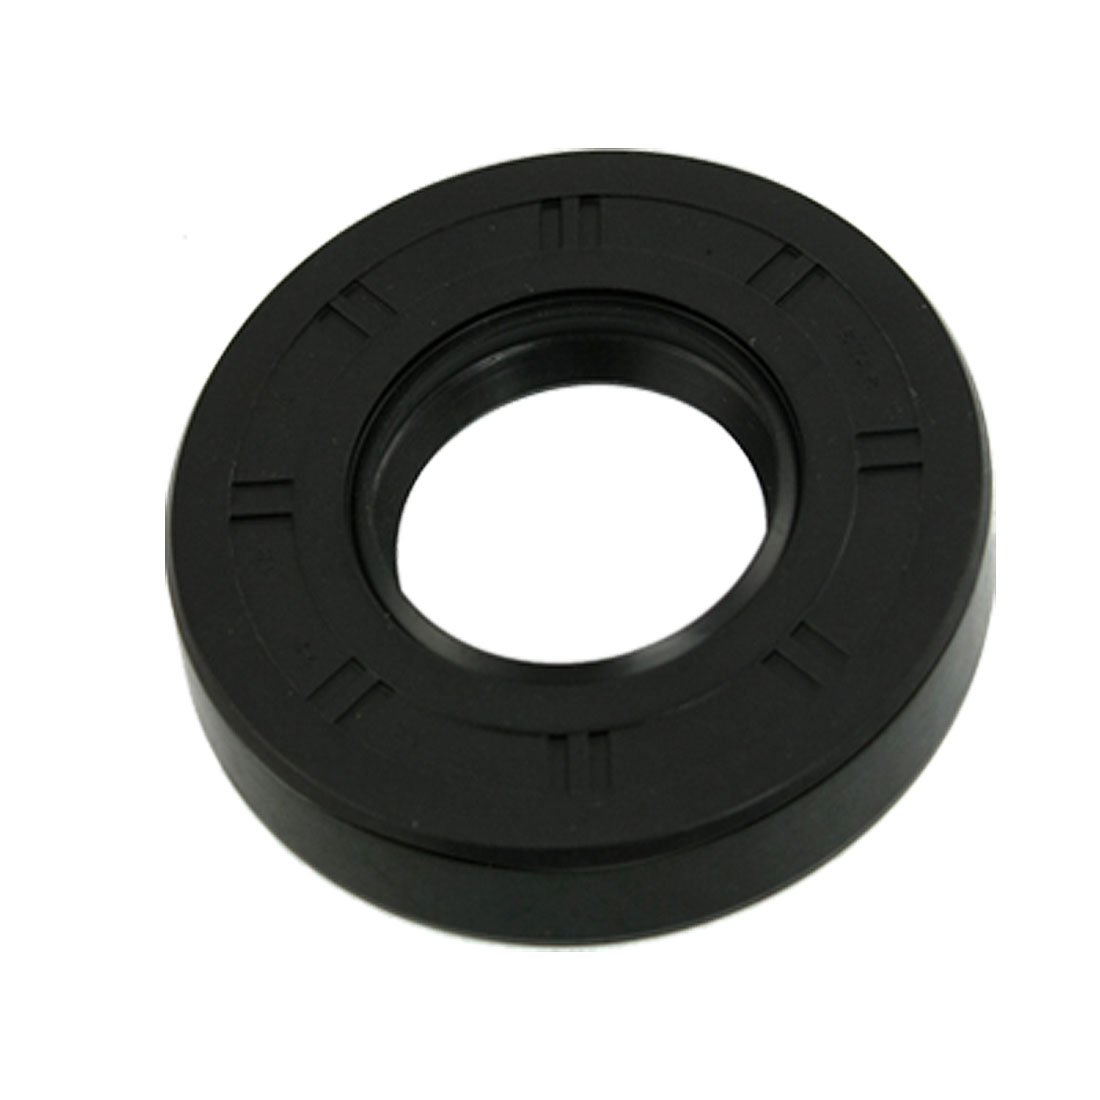 Black 35mm x 72mm x 12mm Rubber Skelecton Oil Seal Sealing Ring Gasket